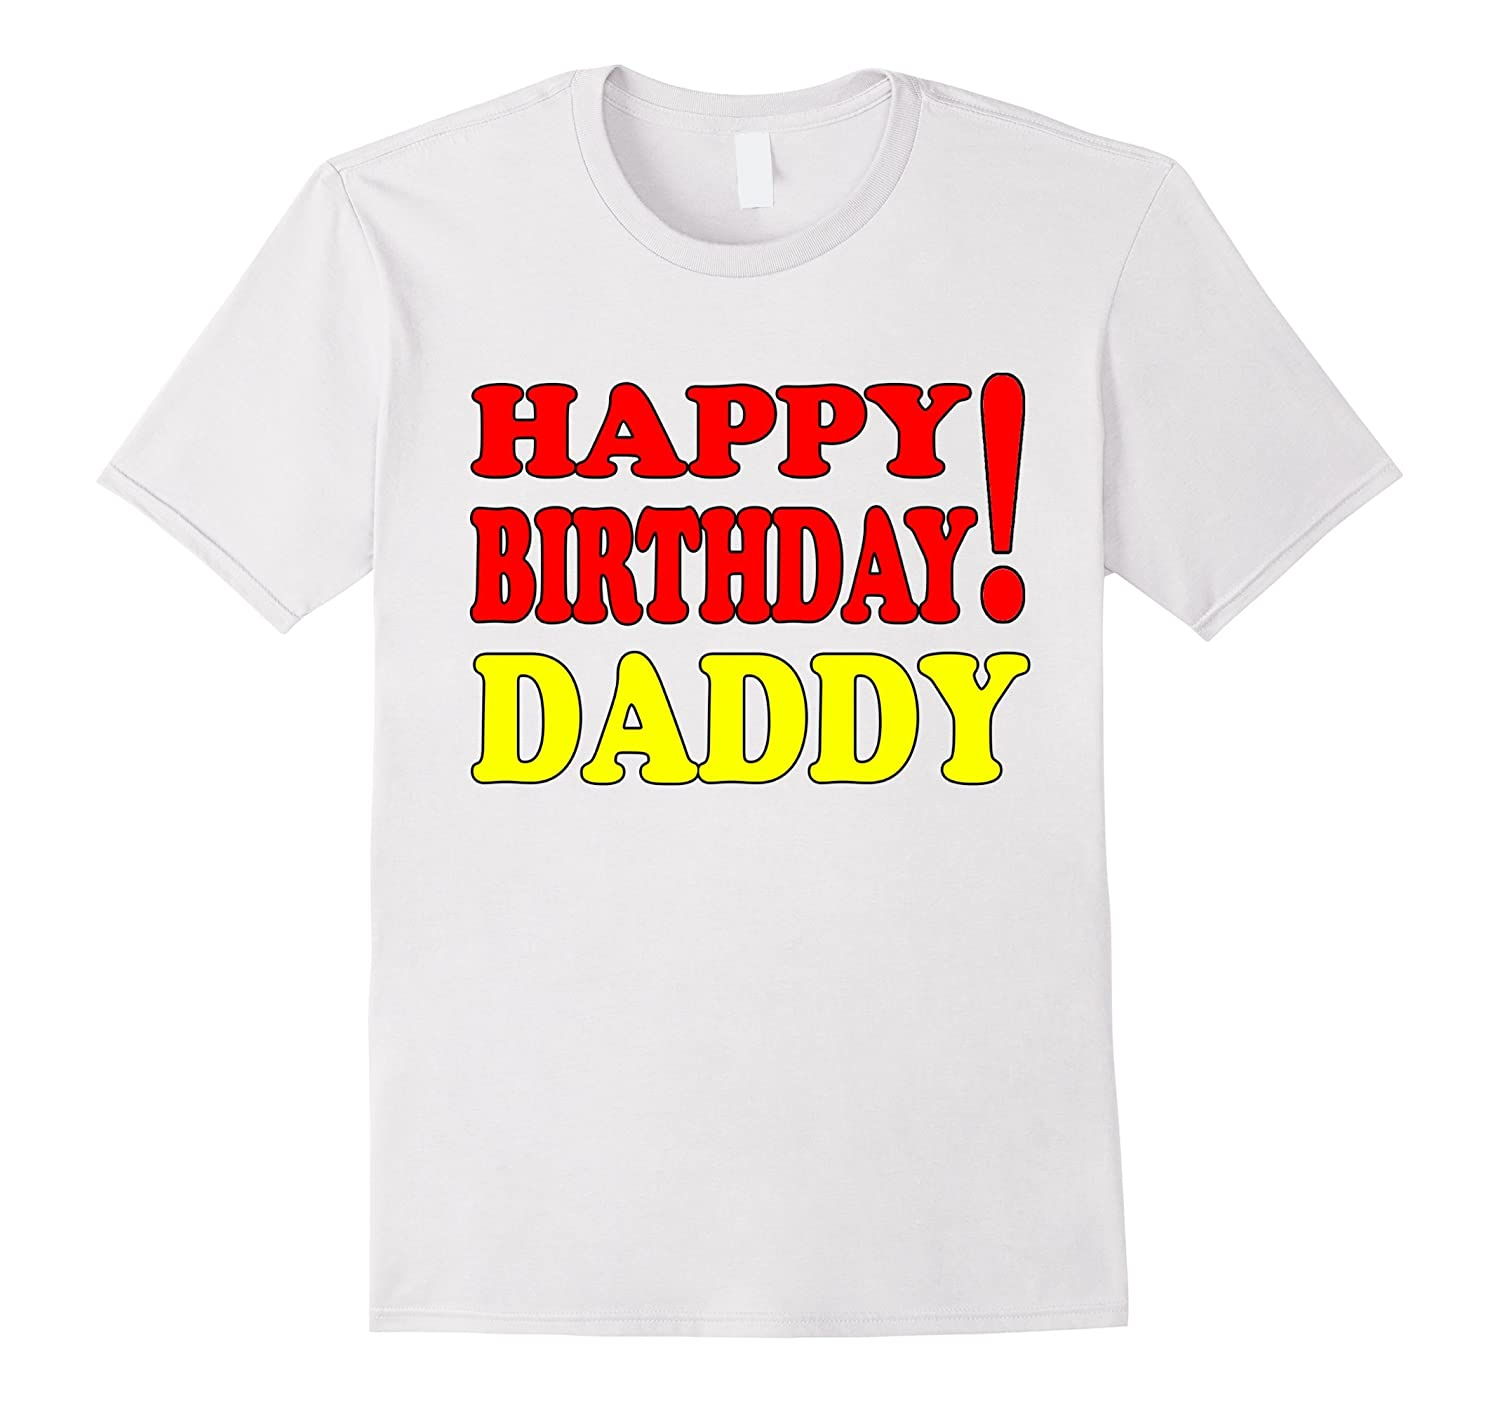 Coolest Ideas Gifts Shirt Happy Birthday To DADDY RT